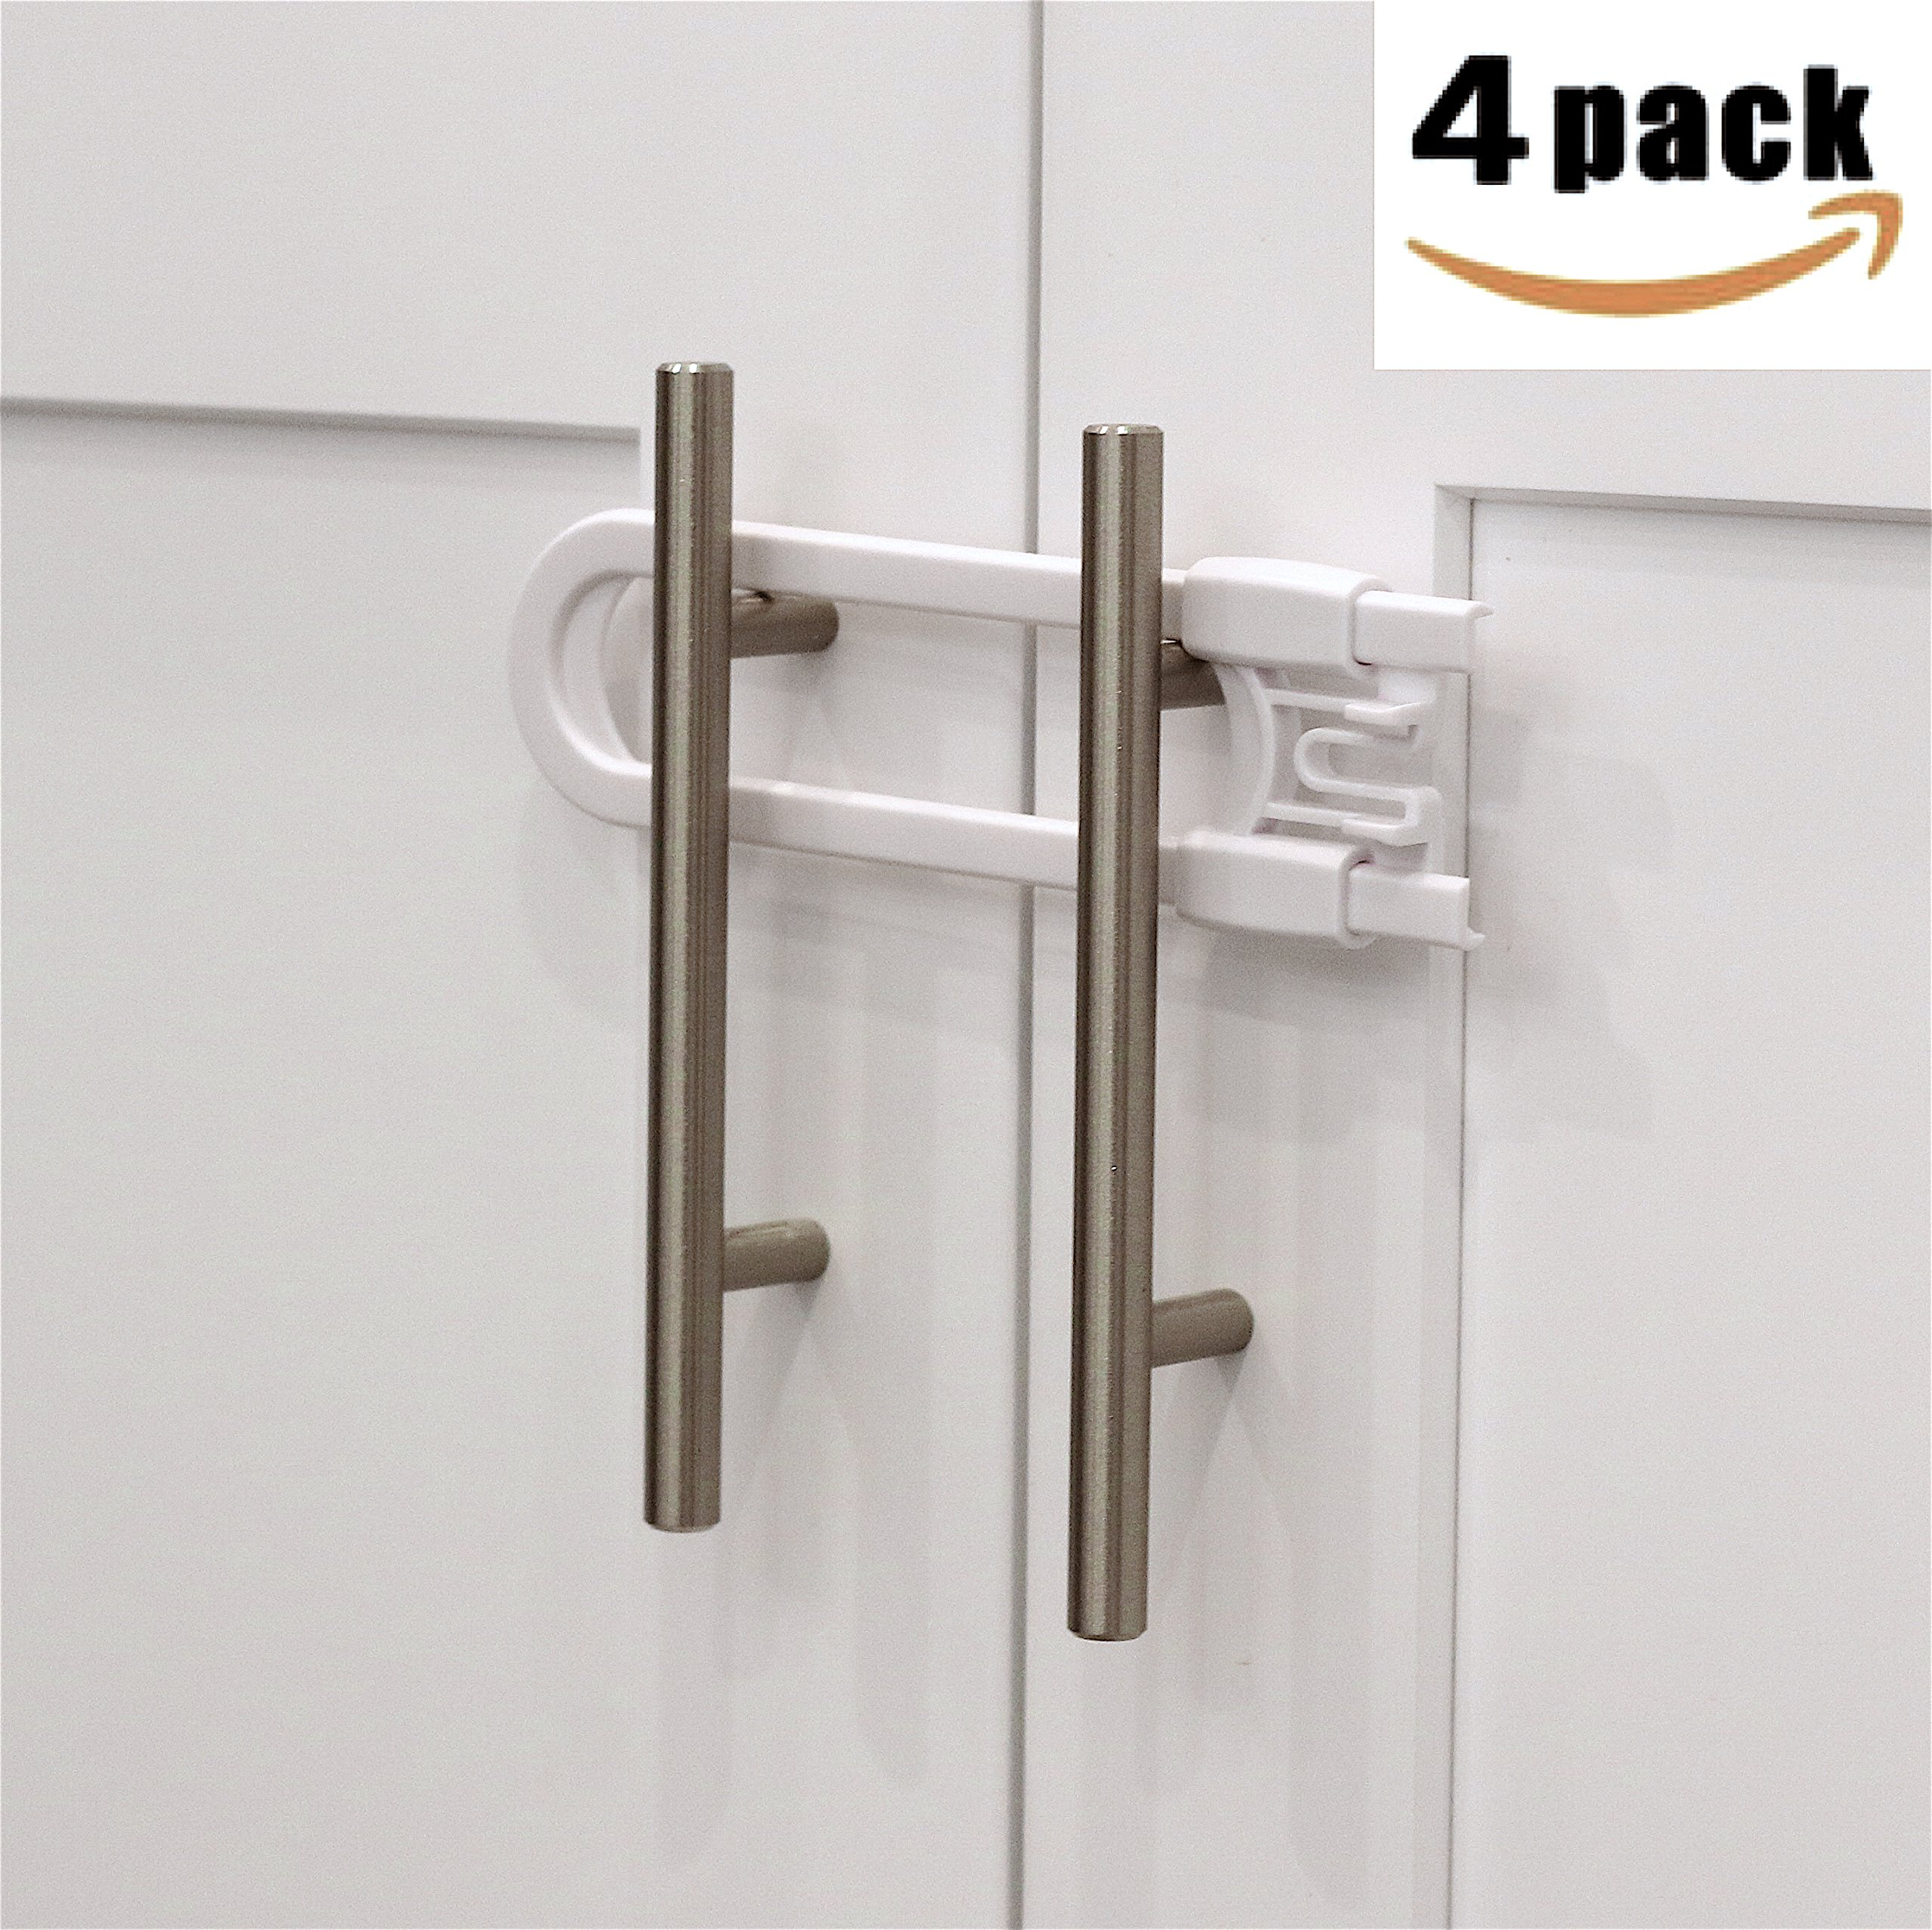 Amazon Com Door Knob Covers 4 Pack Child Safety